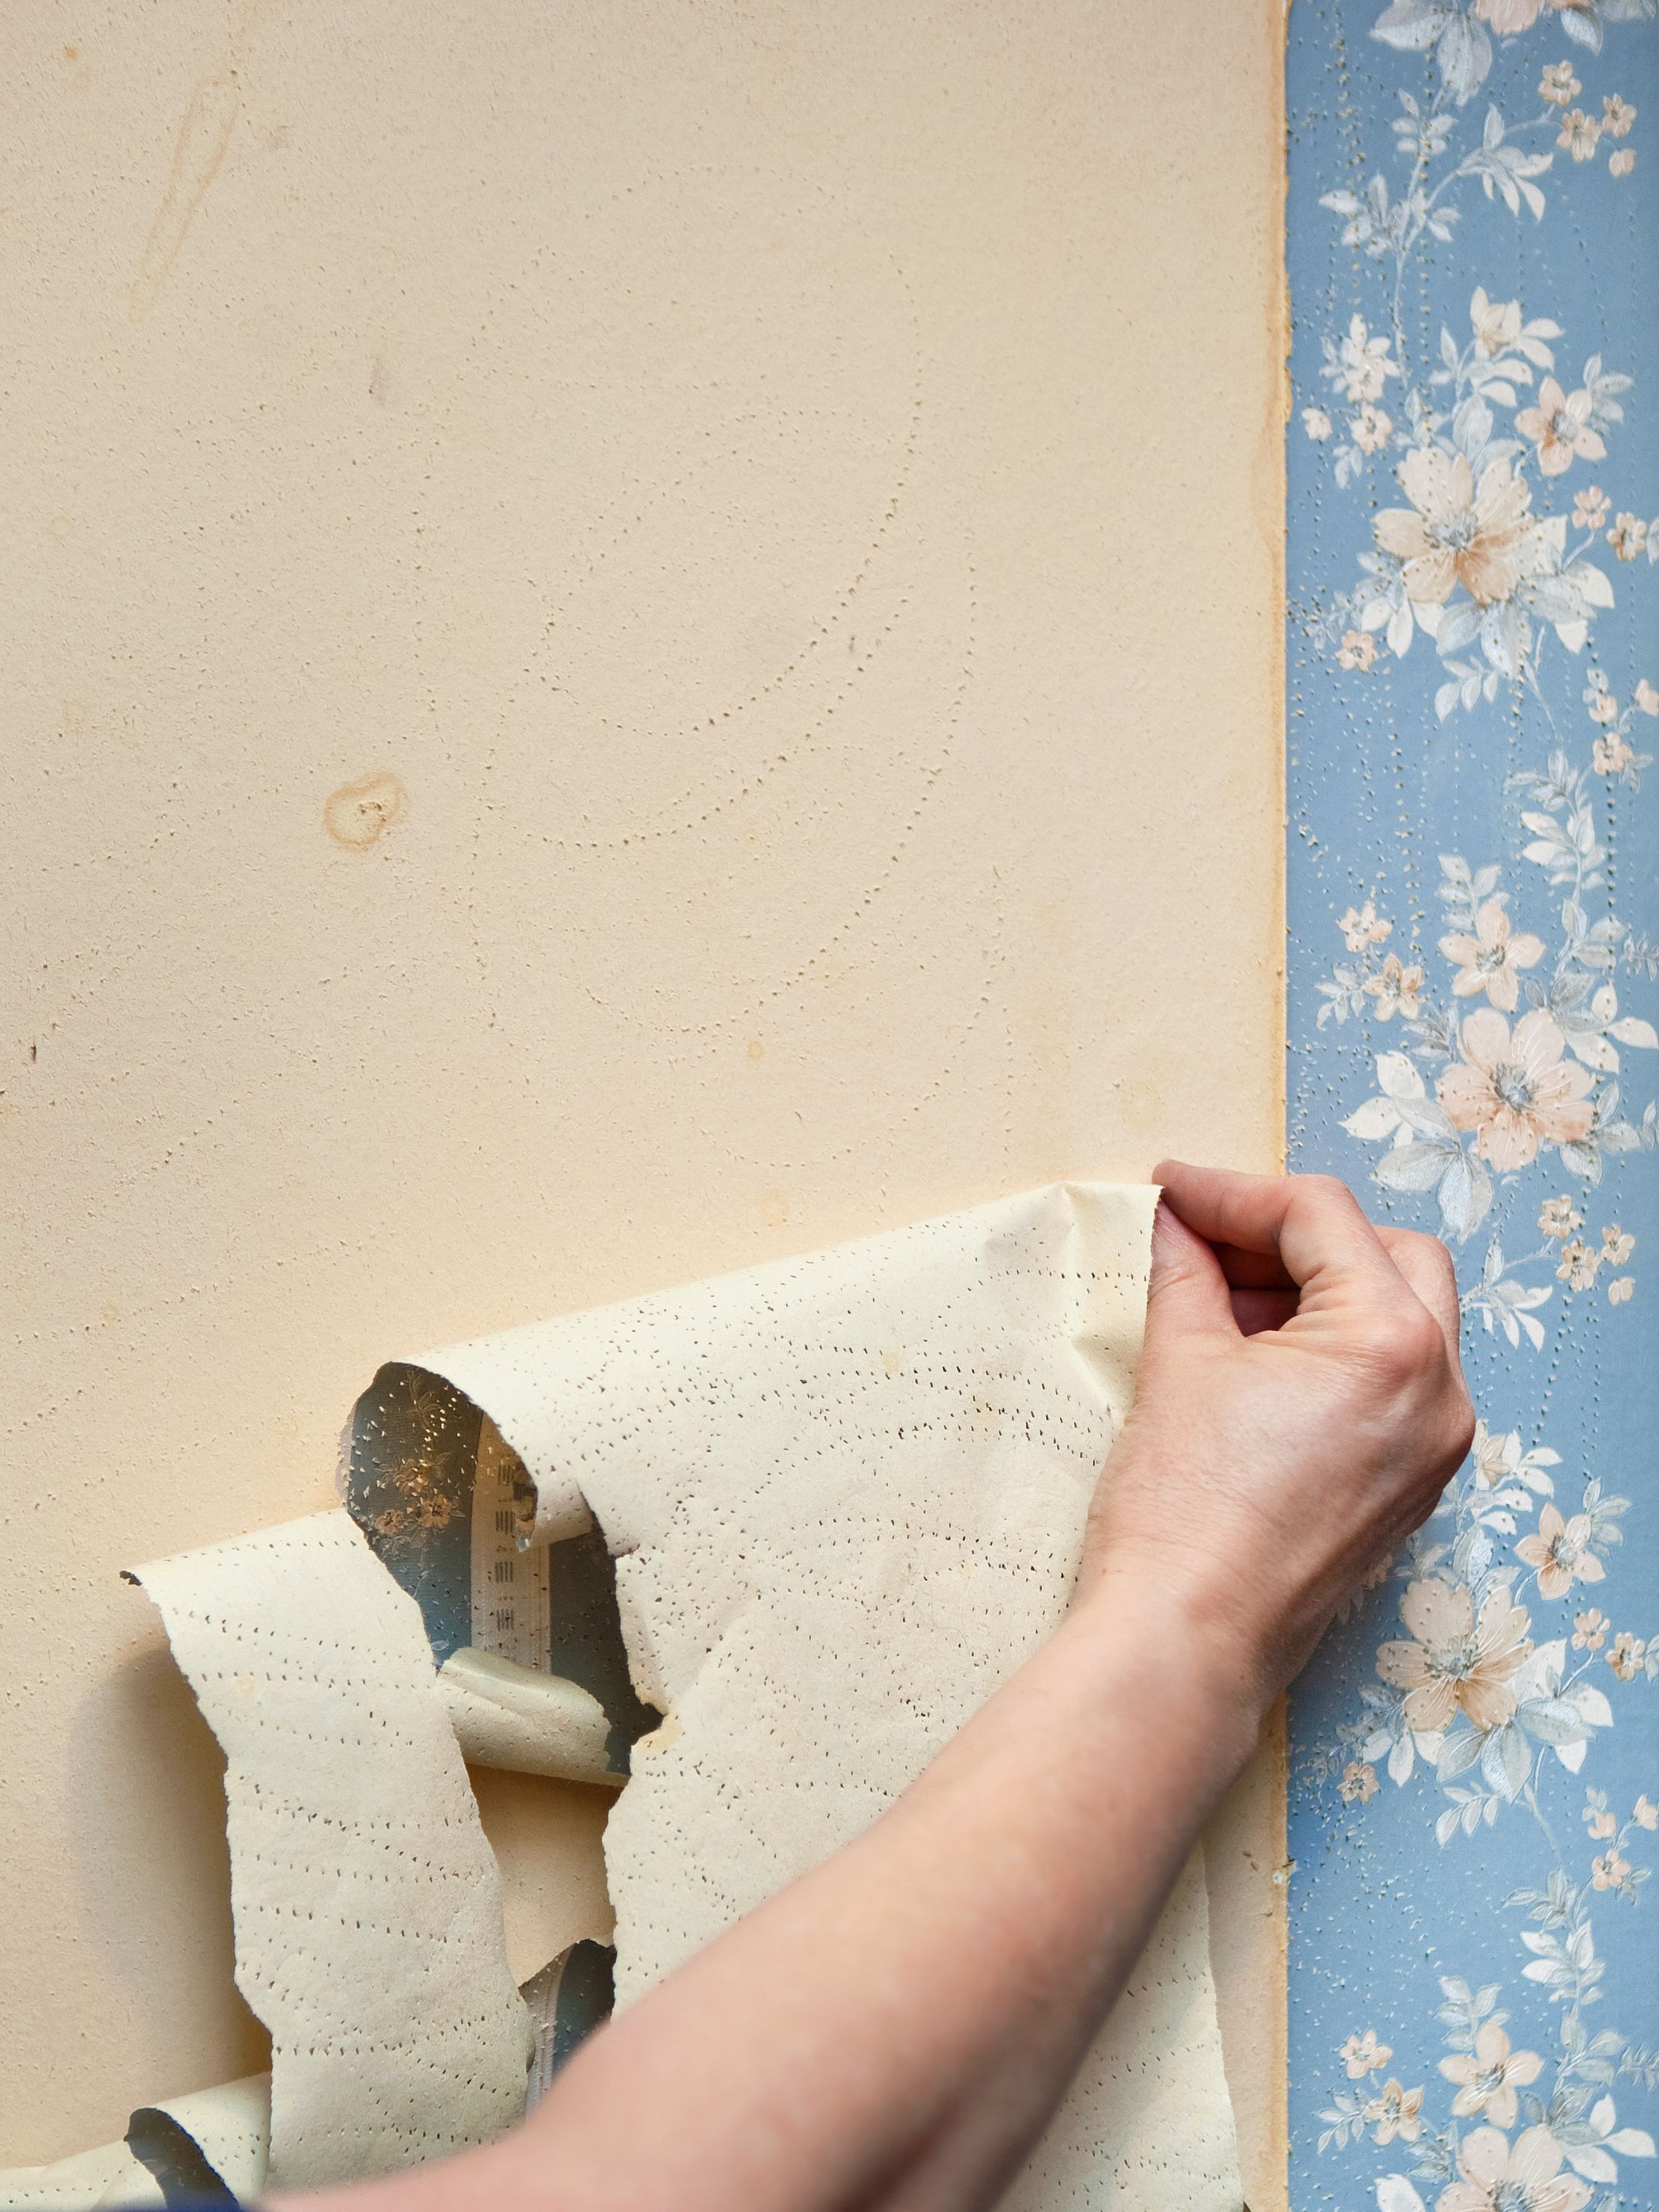 How To Remove Wallpaper - 7 Easy Steps